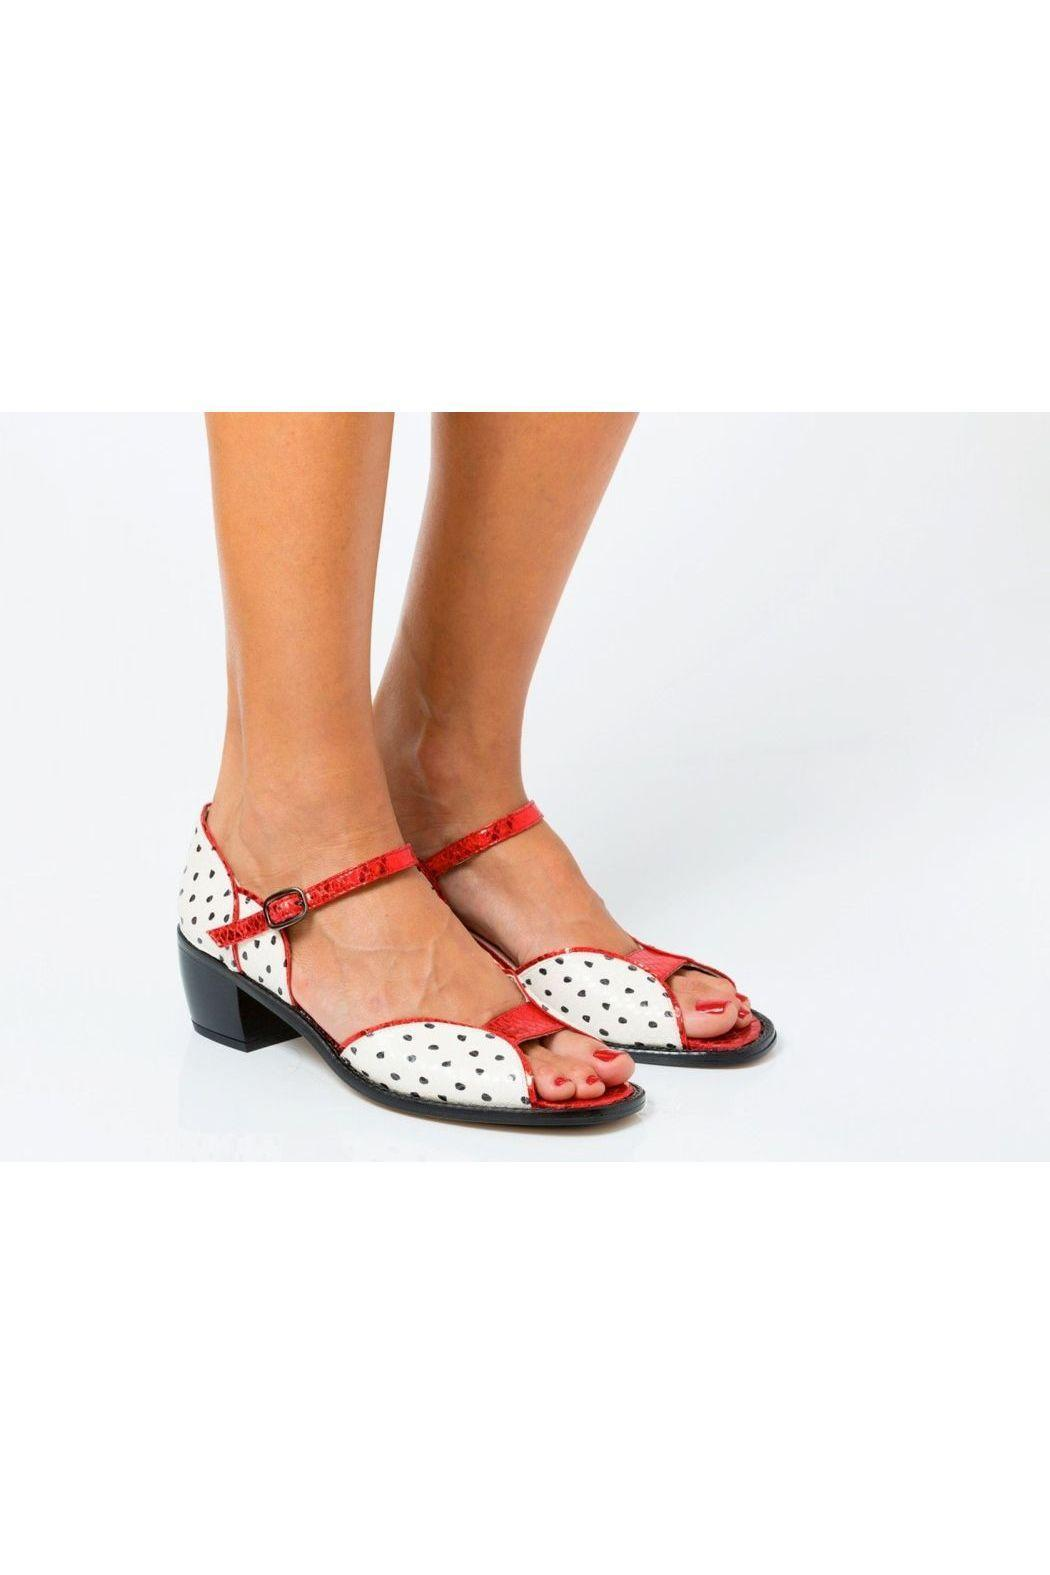 5yMedio Carlota White Black Red Sandals - Front Full Image